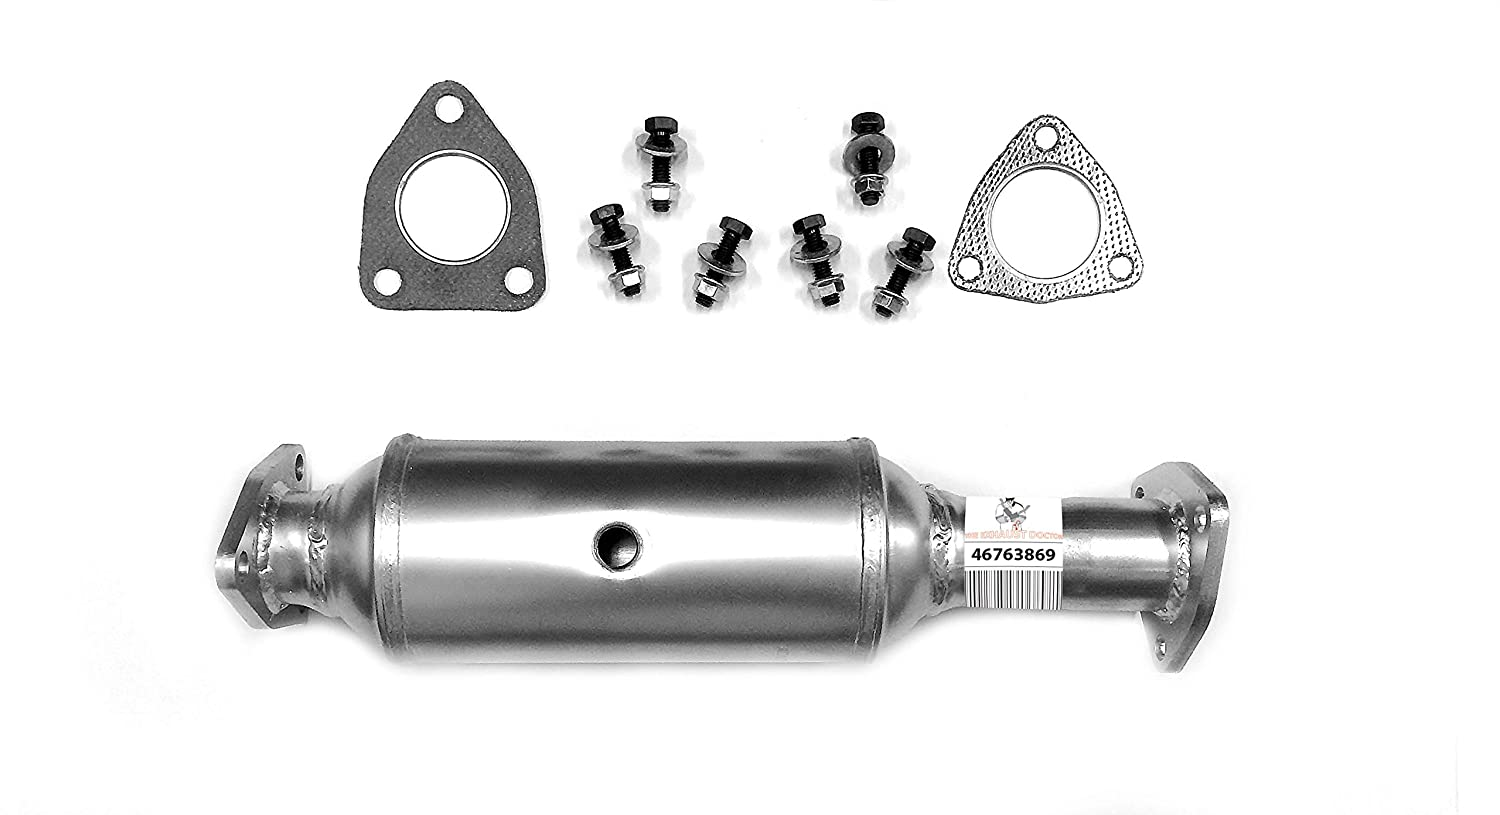 99-03 Acura TL//TL S//01-03 CL//CL S 3.2L//98-02 Accord//99-04 Odyssey 3.0L TED Direct-Fit Catalytic Converters Fits